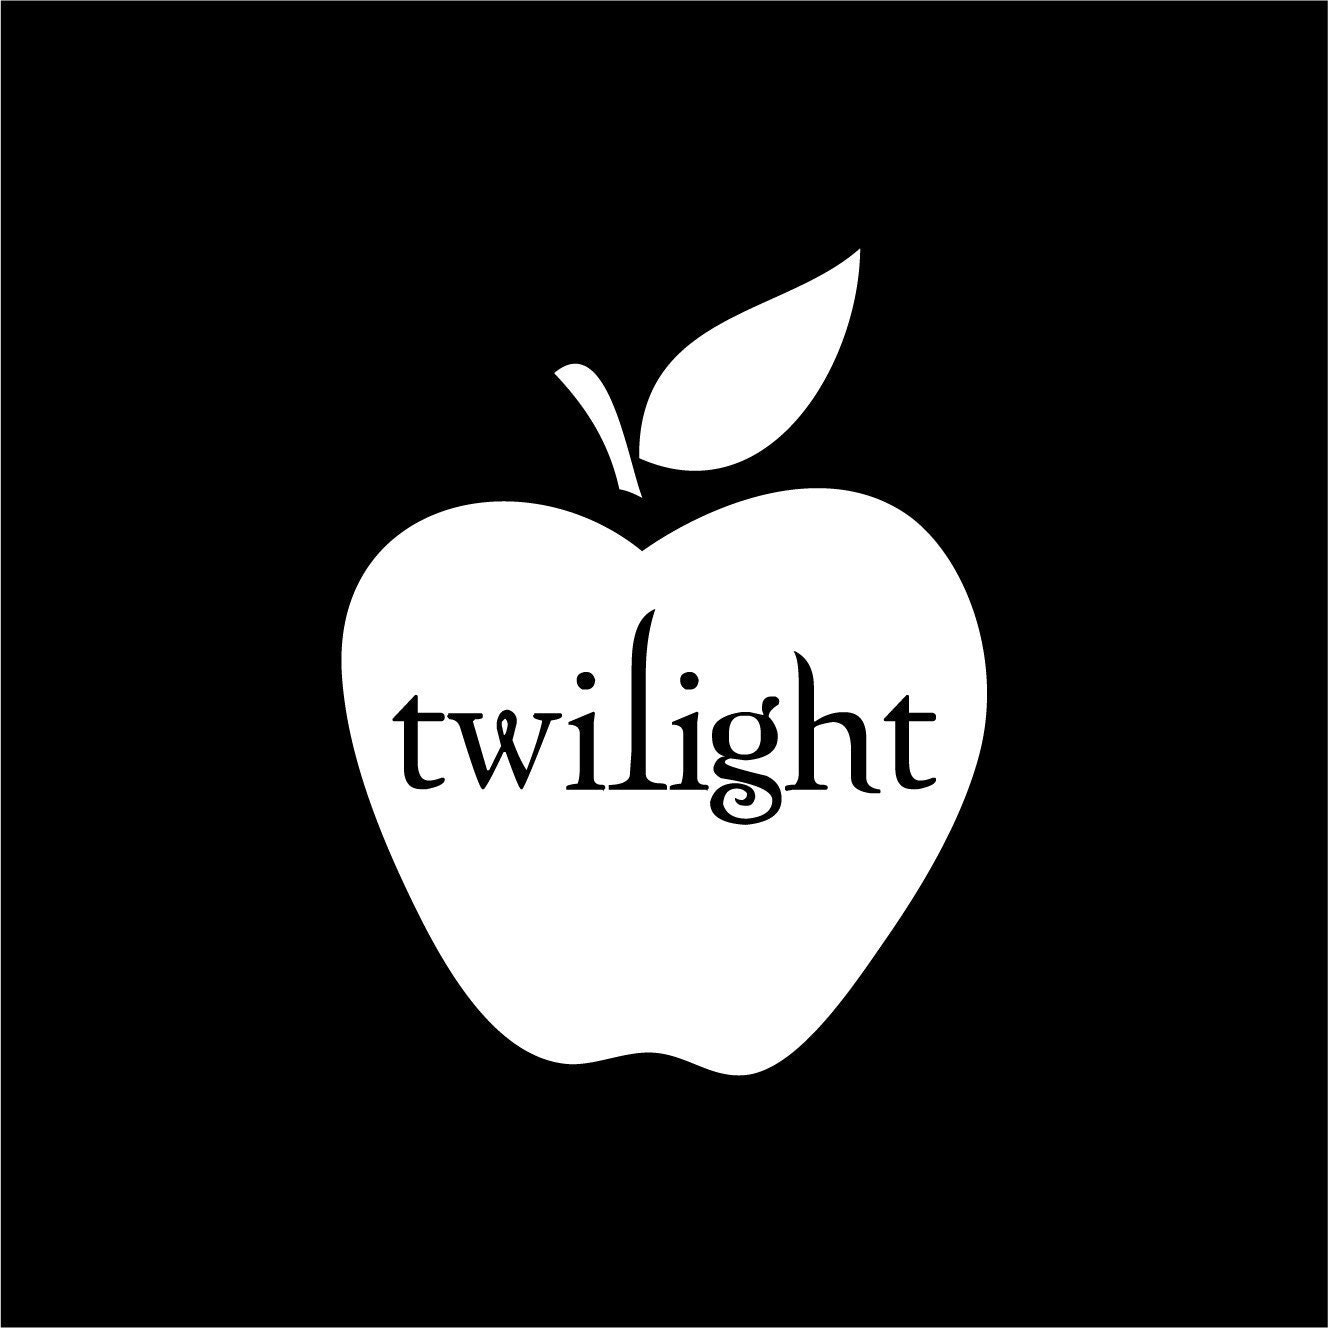 Twilight Apple Vinyl Wall Decal Or Bumper Sticker